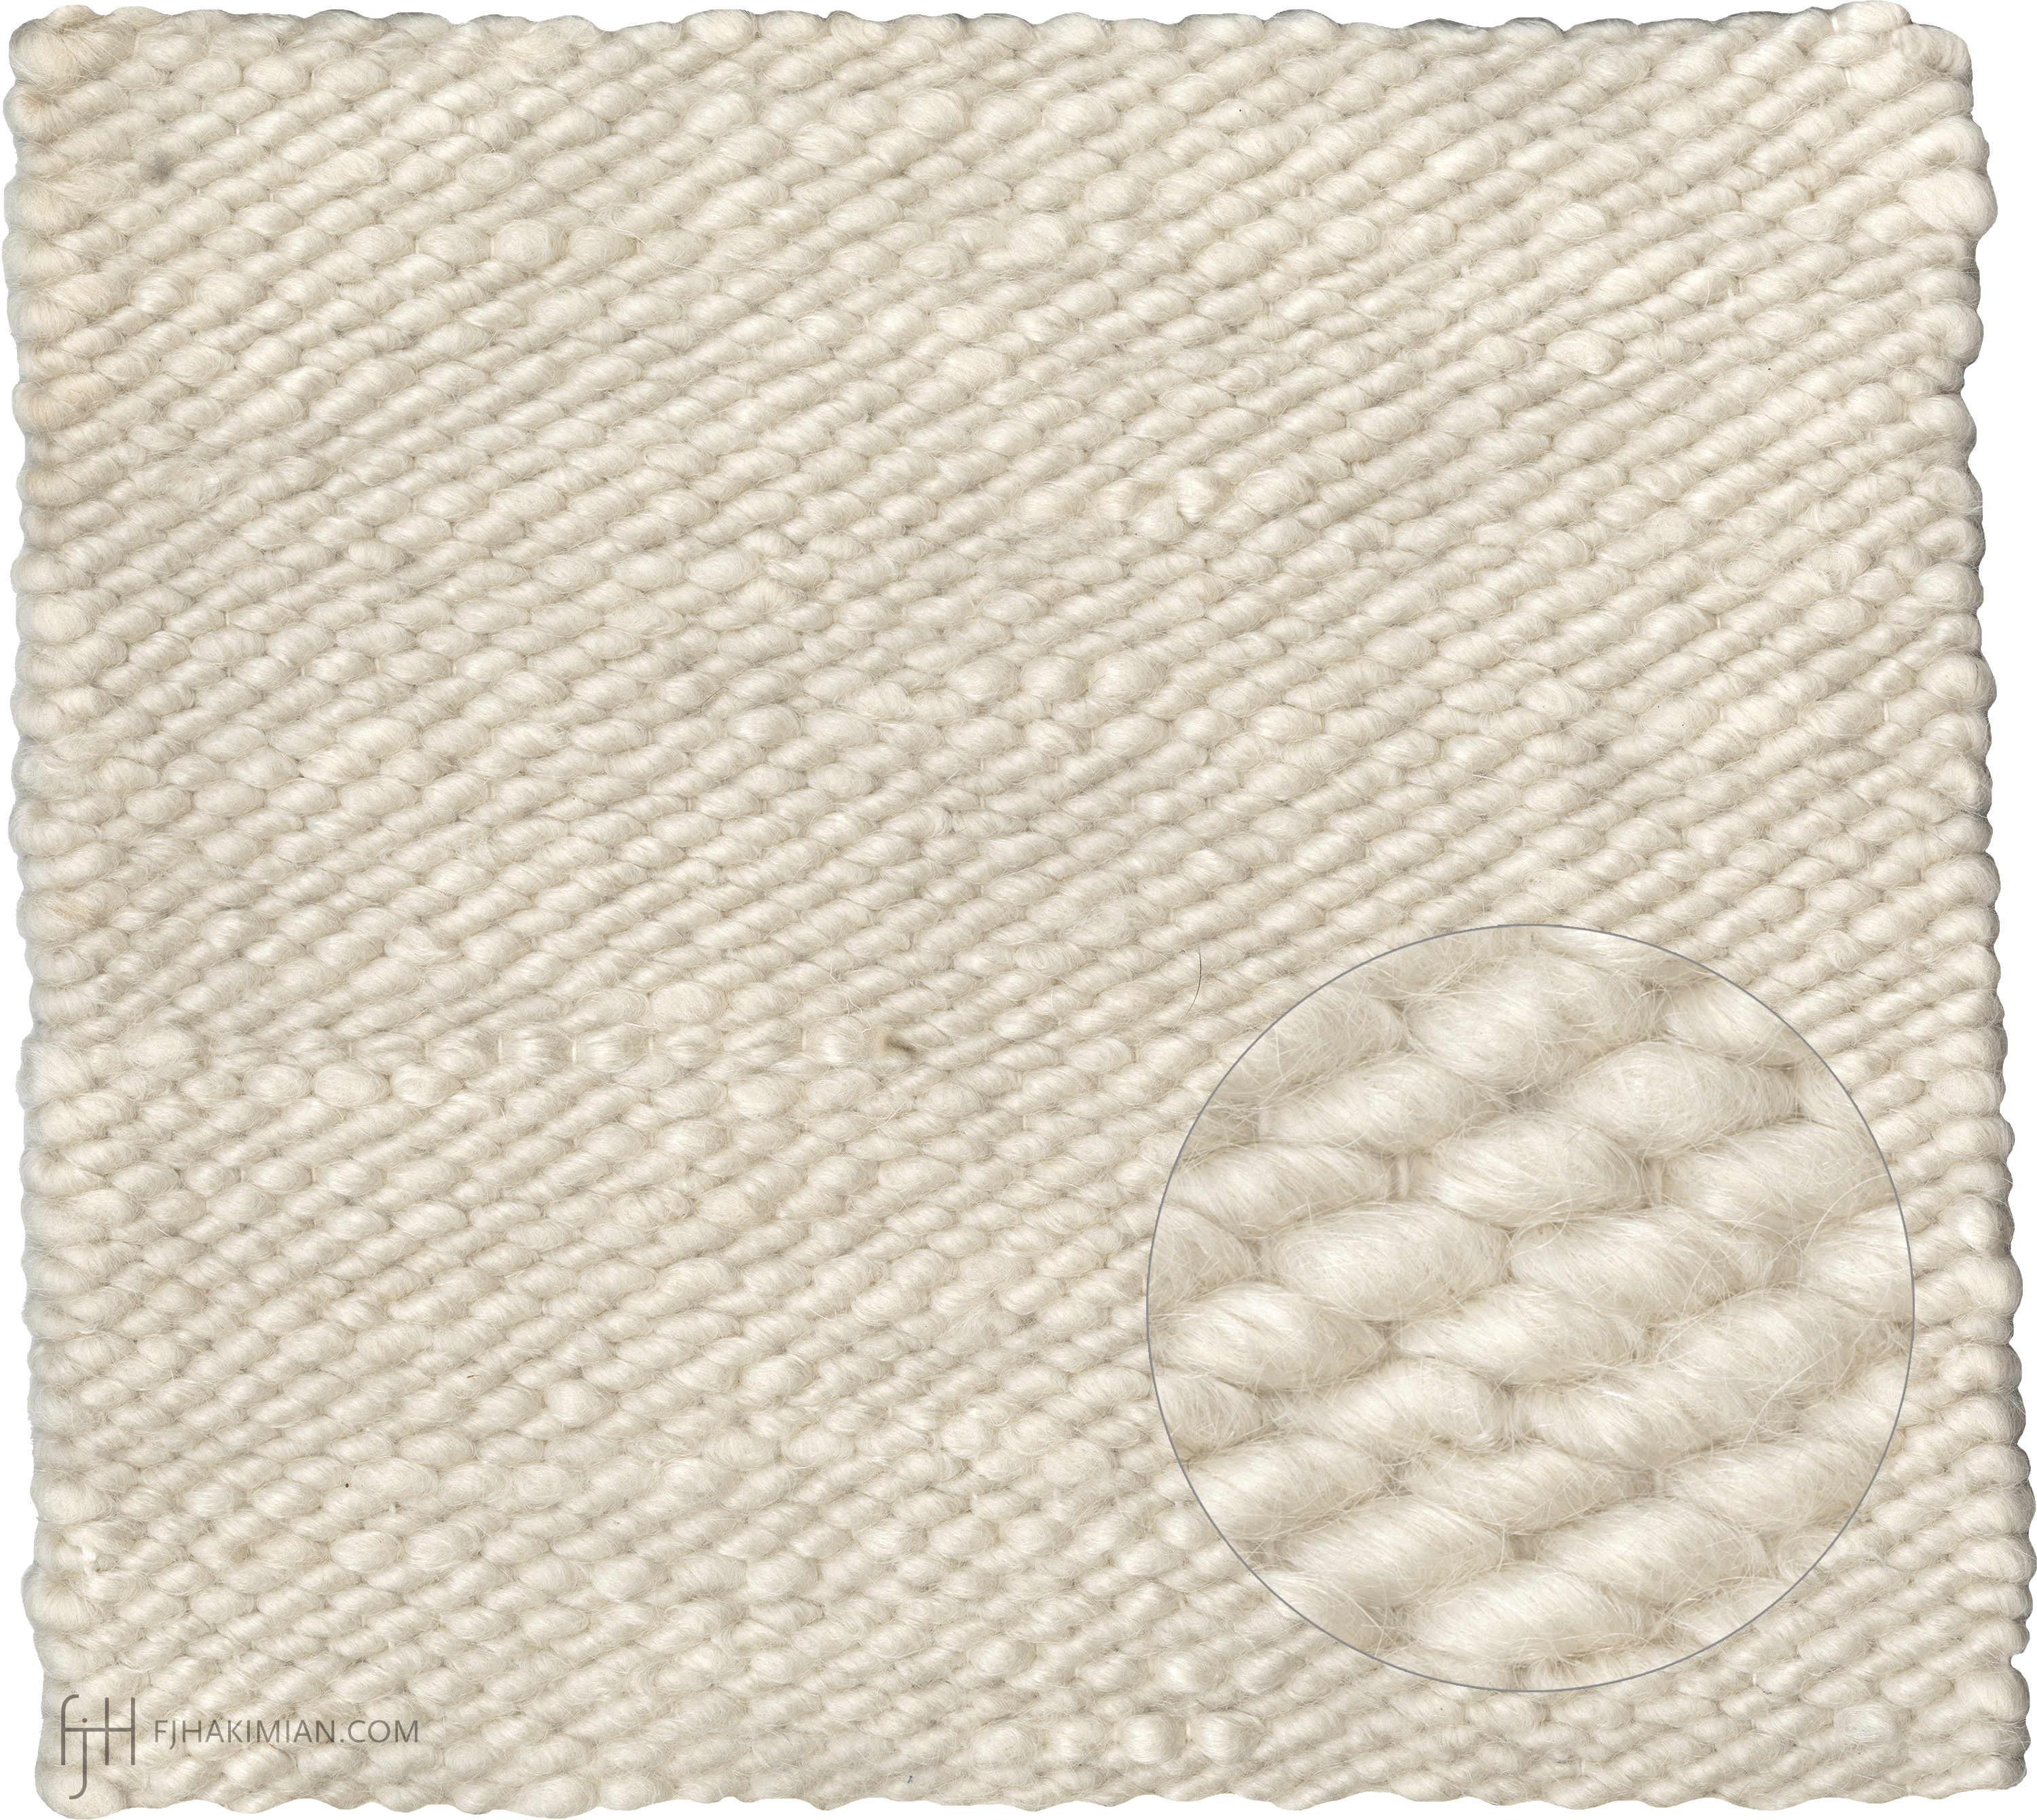 #57203-SW-Mohair-Col-Natural-FJ_Hakimian